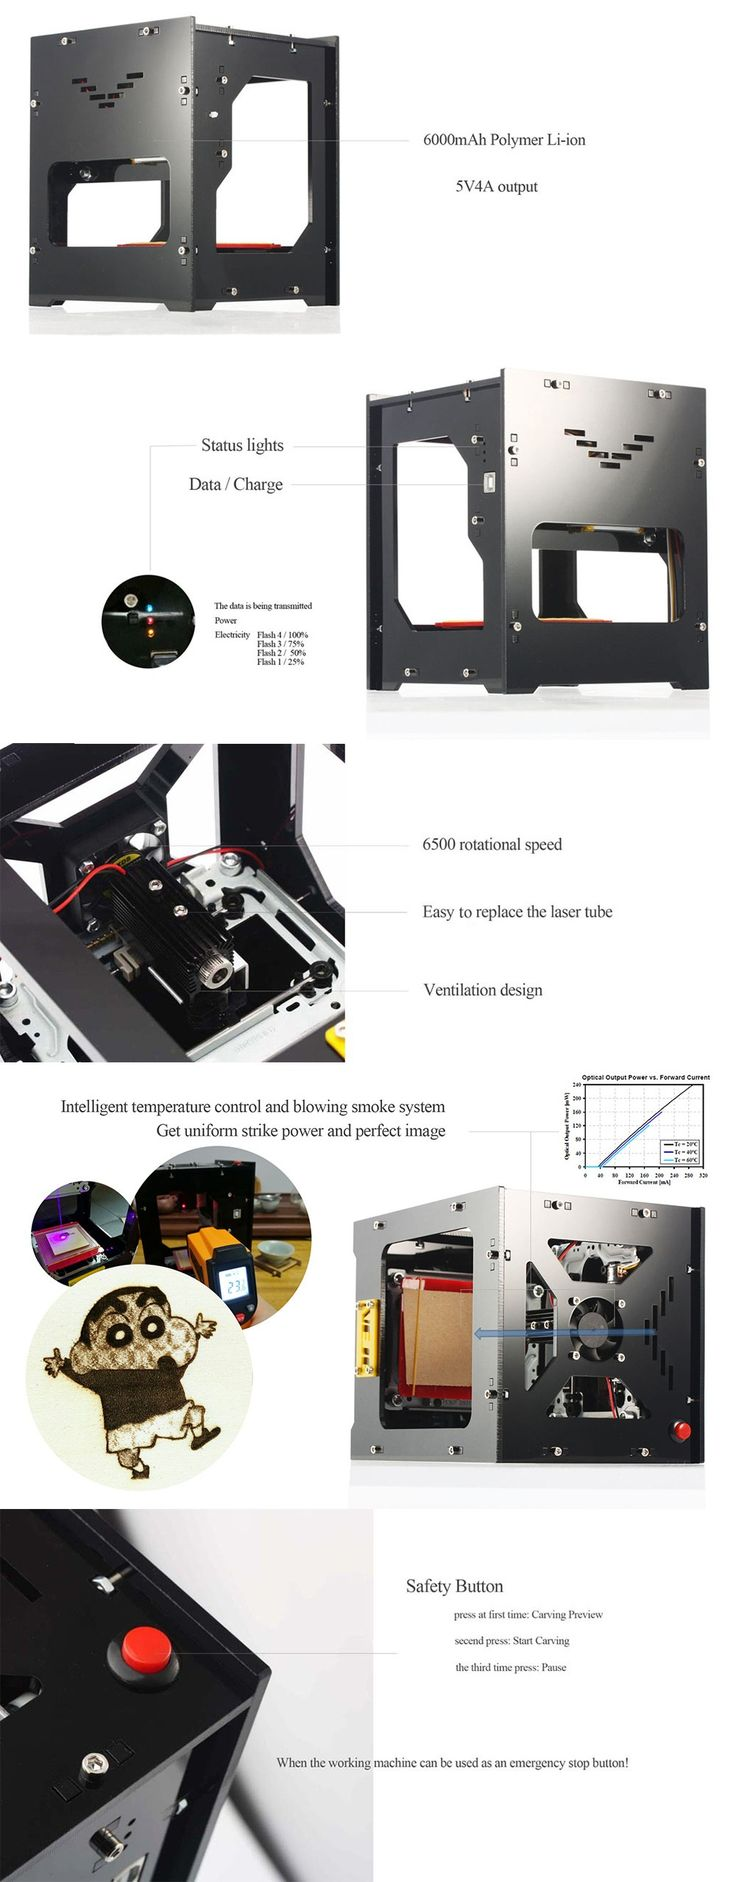 Only US$135.69, NEJE DK-8-FKZ Brand New 1500mW High Speed Mini USB Laser - Tomtop.com